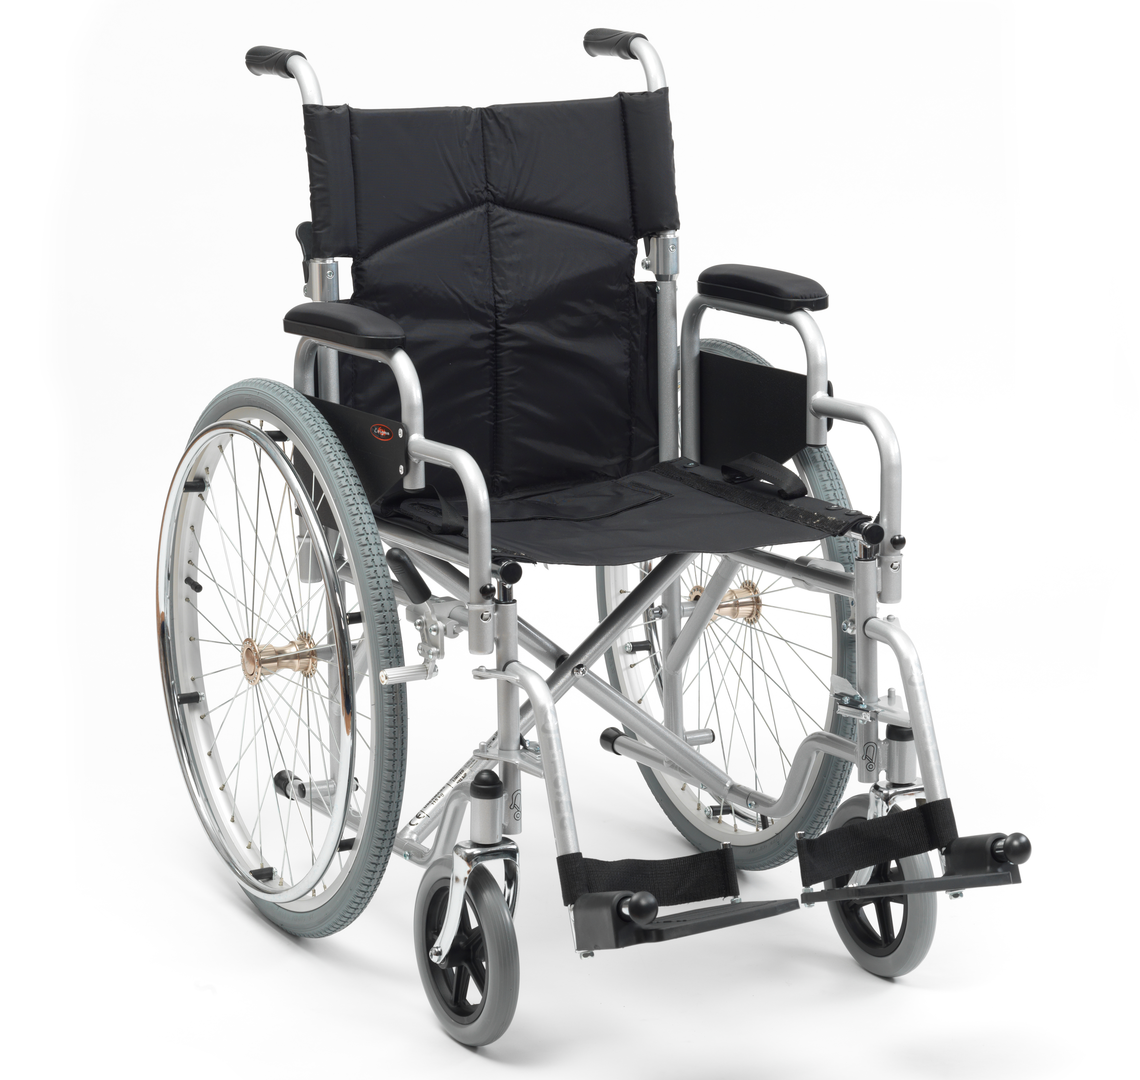 wheelchairs-and-accessories | steel-range